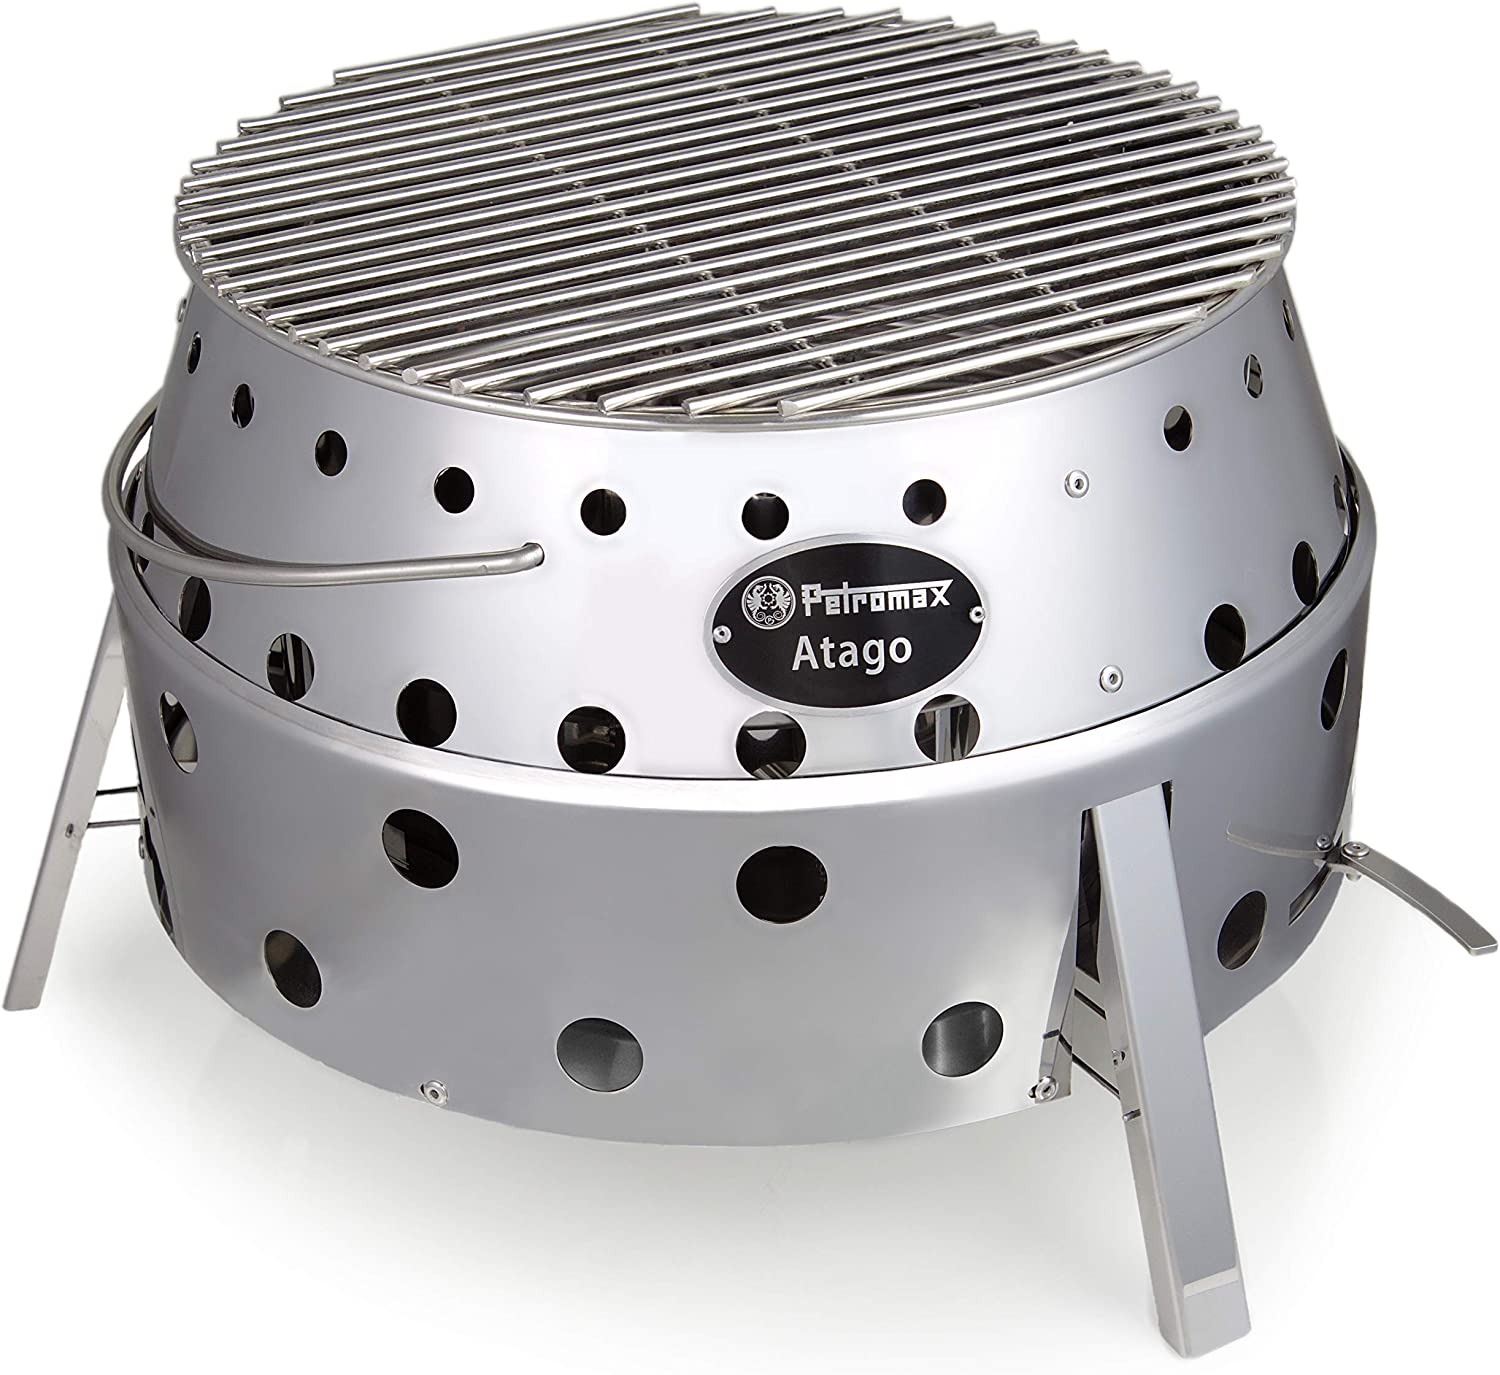 Petromax Atago BBQ Stainless Steel Barbeque /& Fire Pit